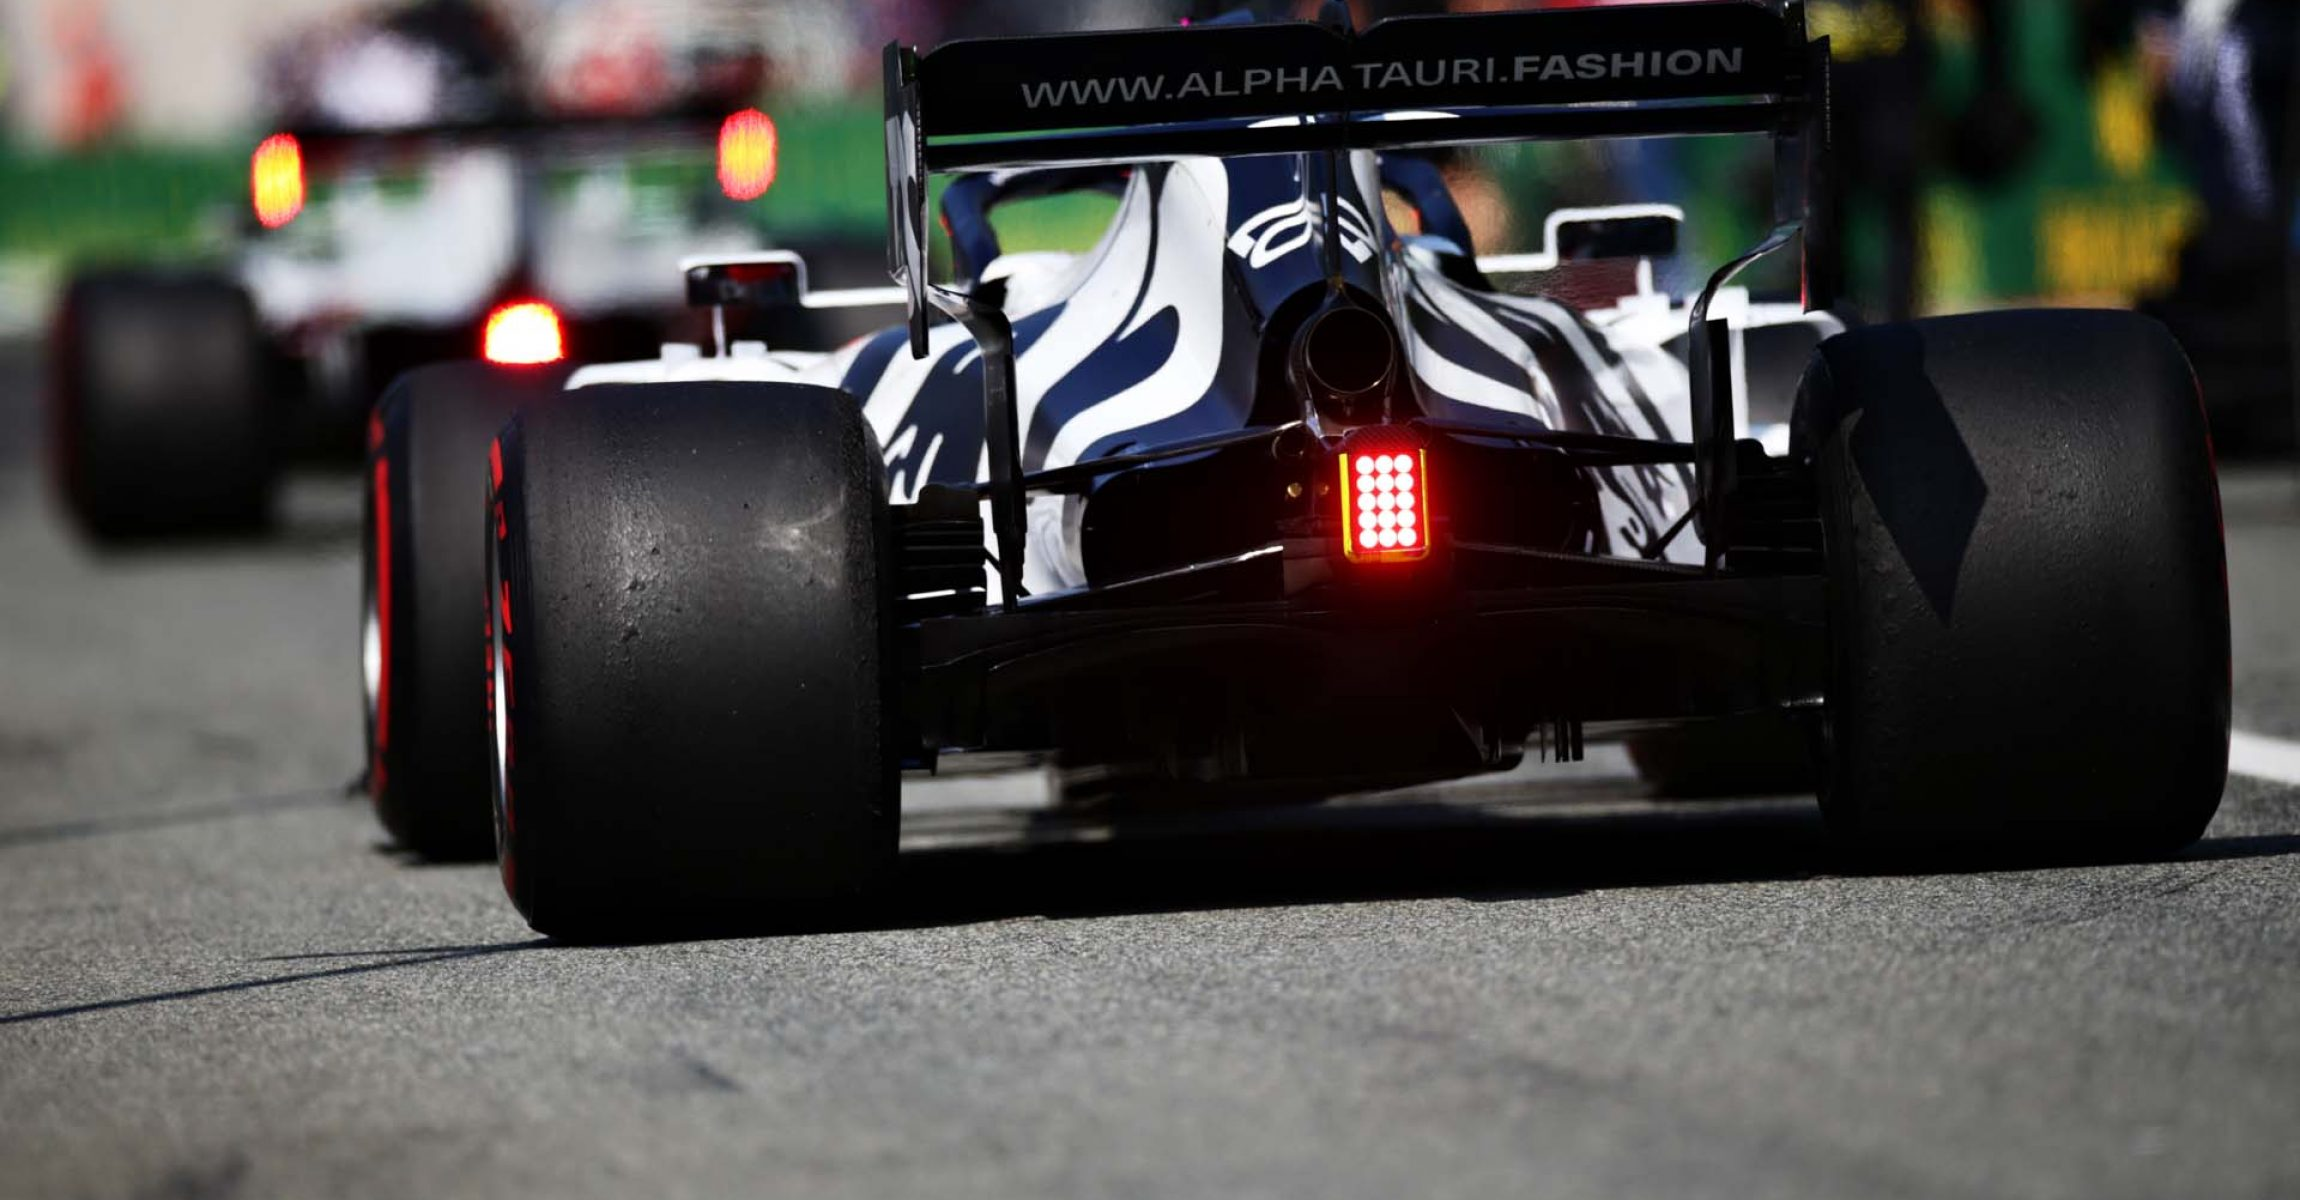 MONZA, ITALY - SEPTEMBER 06: Daniil Kvyat of Russia driving the (26) Scuderia AlphaTauri AT01 Honda in the Pitlane before the F1 Grand Prix of Italy at Autodromo di Monza on September 06, 2020 in Monza, Italy. (Photo by Peter Fox/Getty Images)